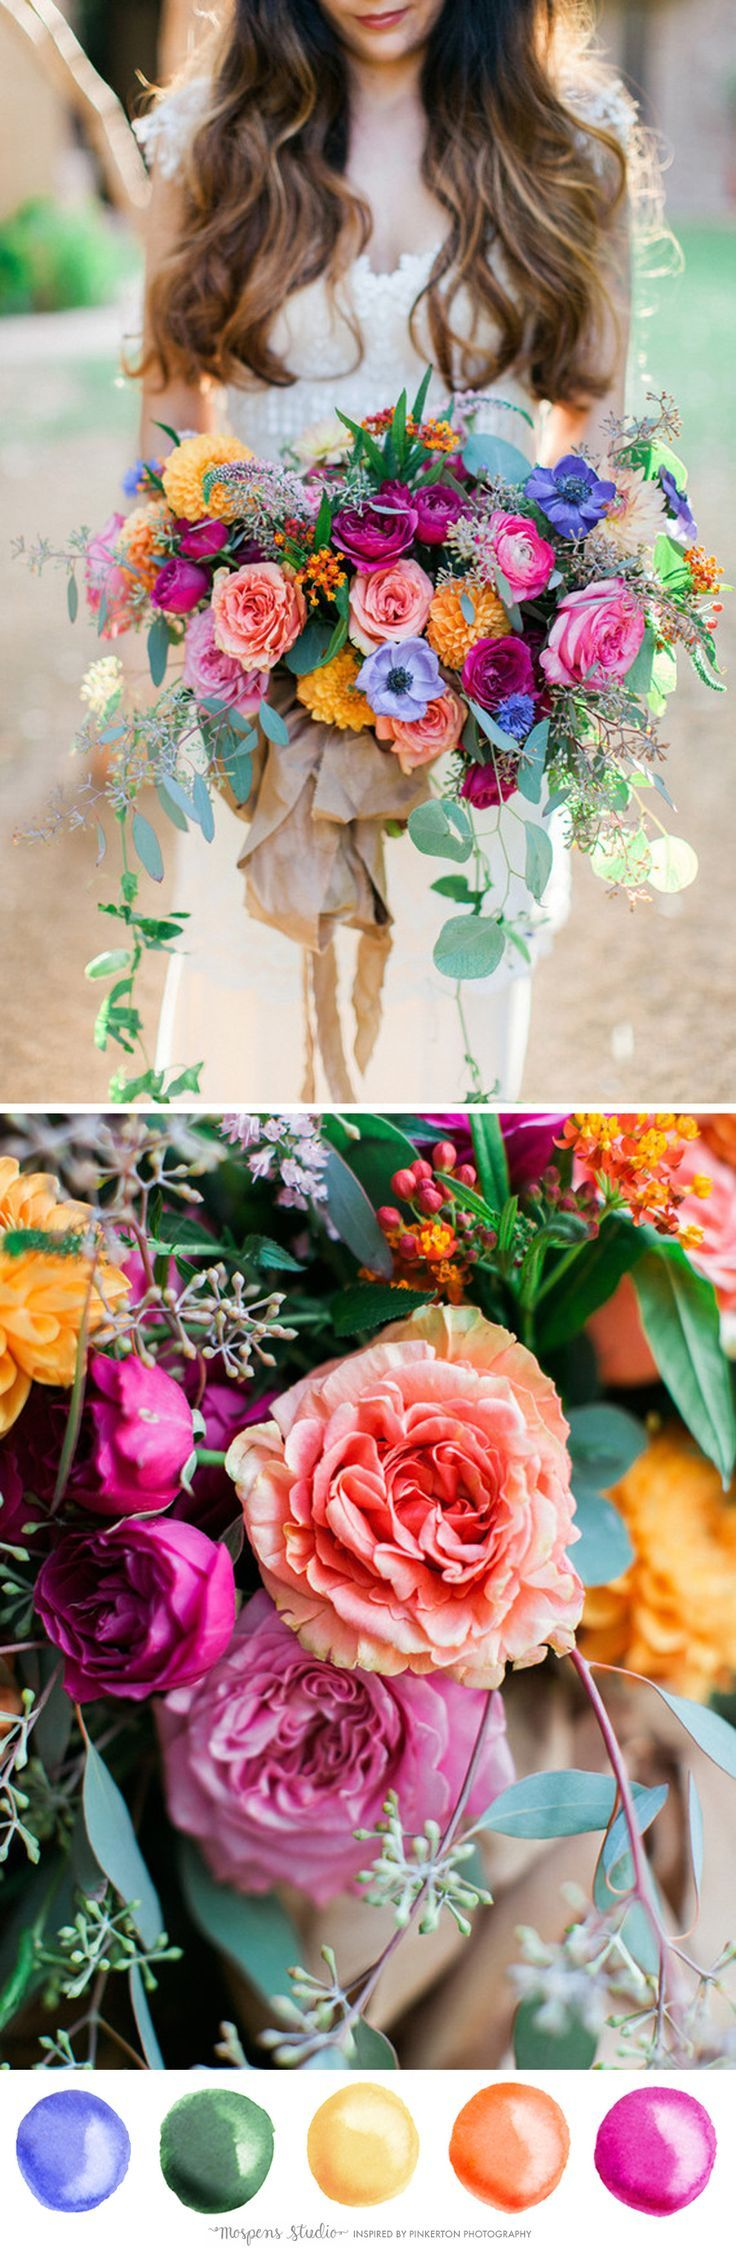 One Of The Most Beautiful Summer Wedding Color Palettes I Have Ever